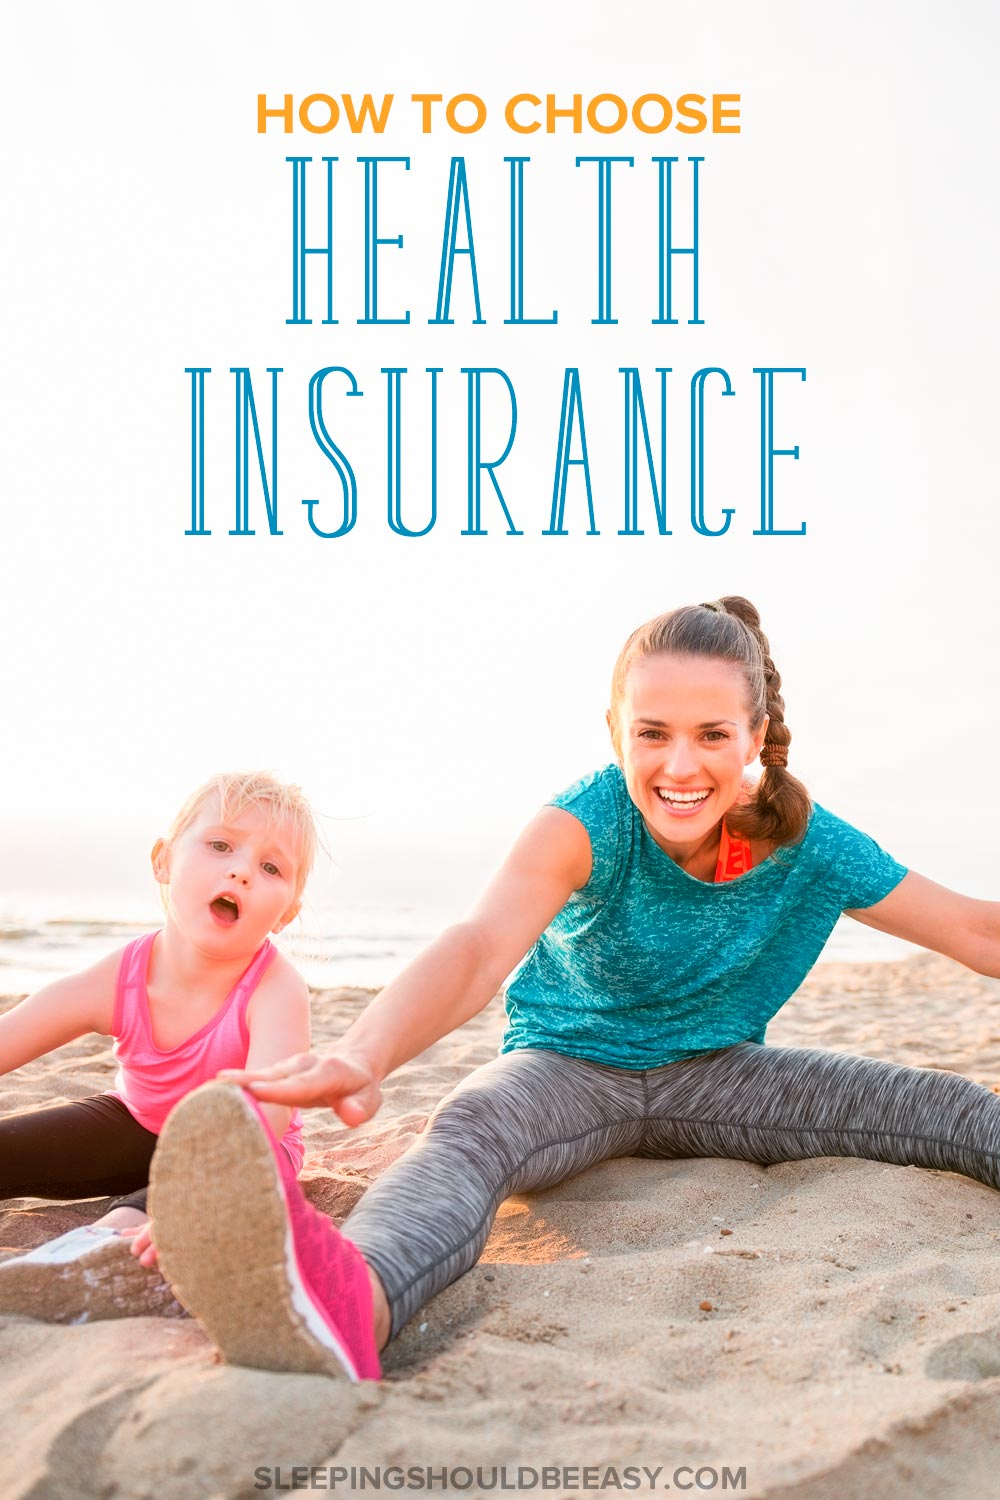 How to Choose Health Insurance: The Tools You Need to Decide